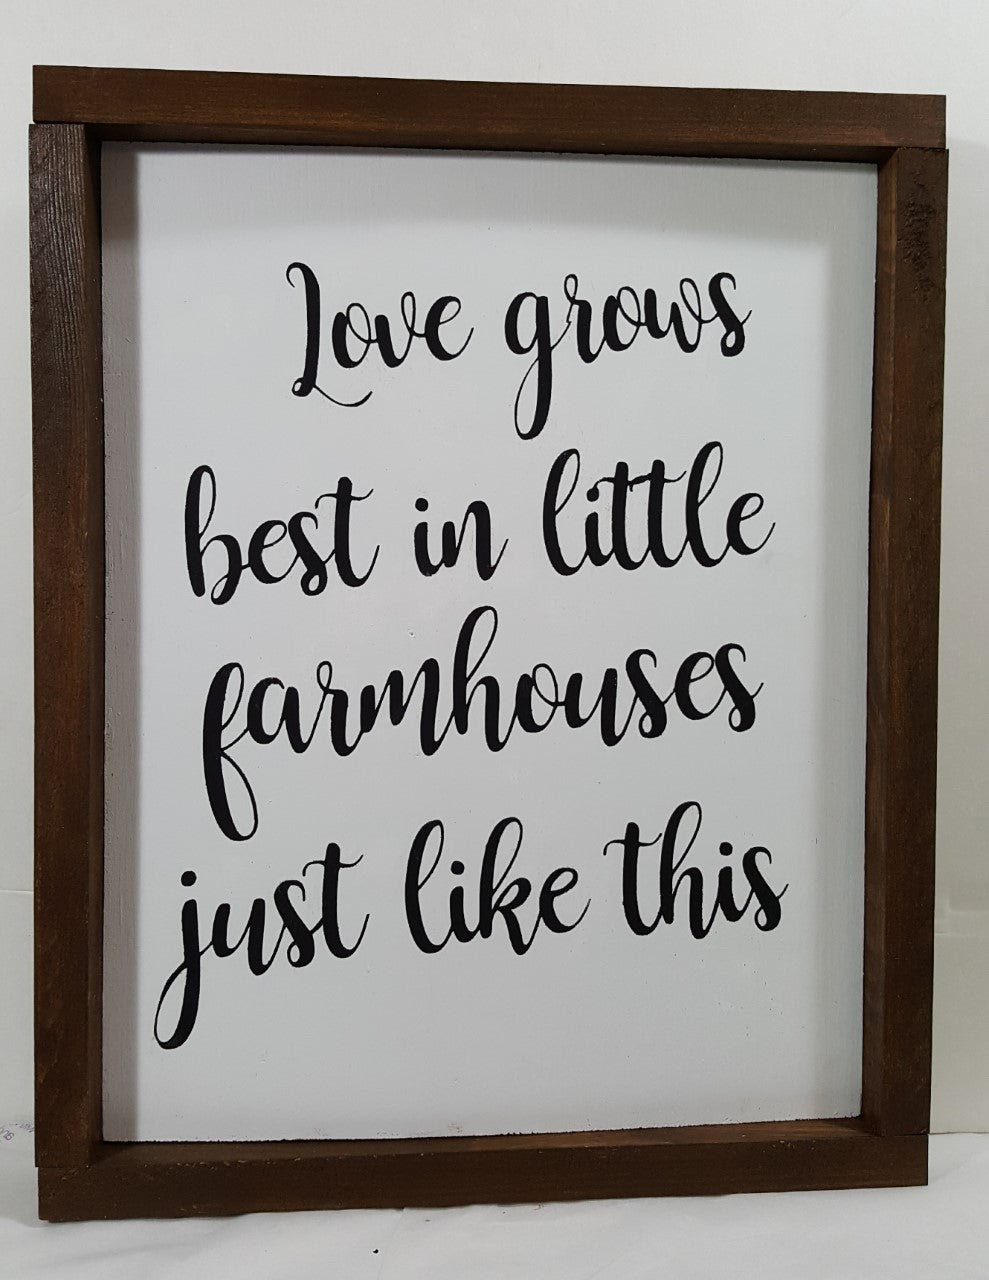 Love Grows Best In Little Farmhouses Just Like This Framed Sign Farmhouse 9